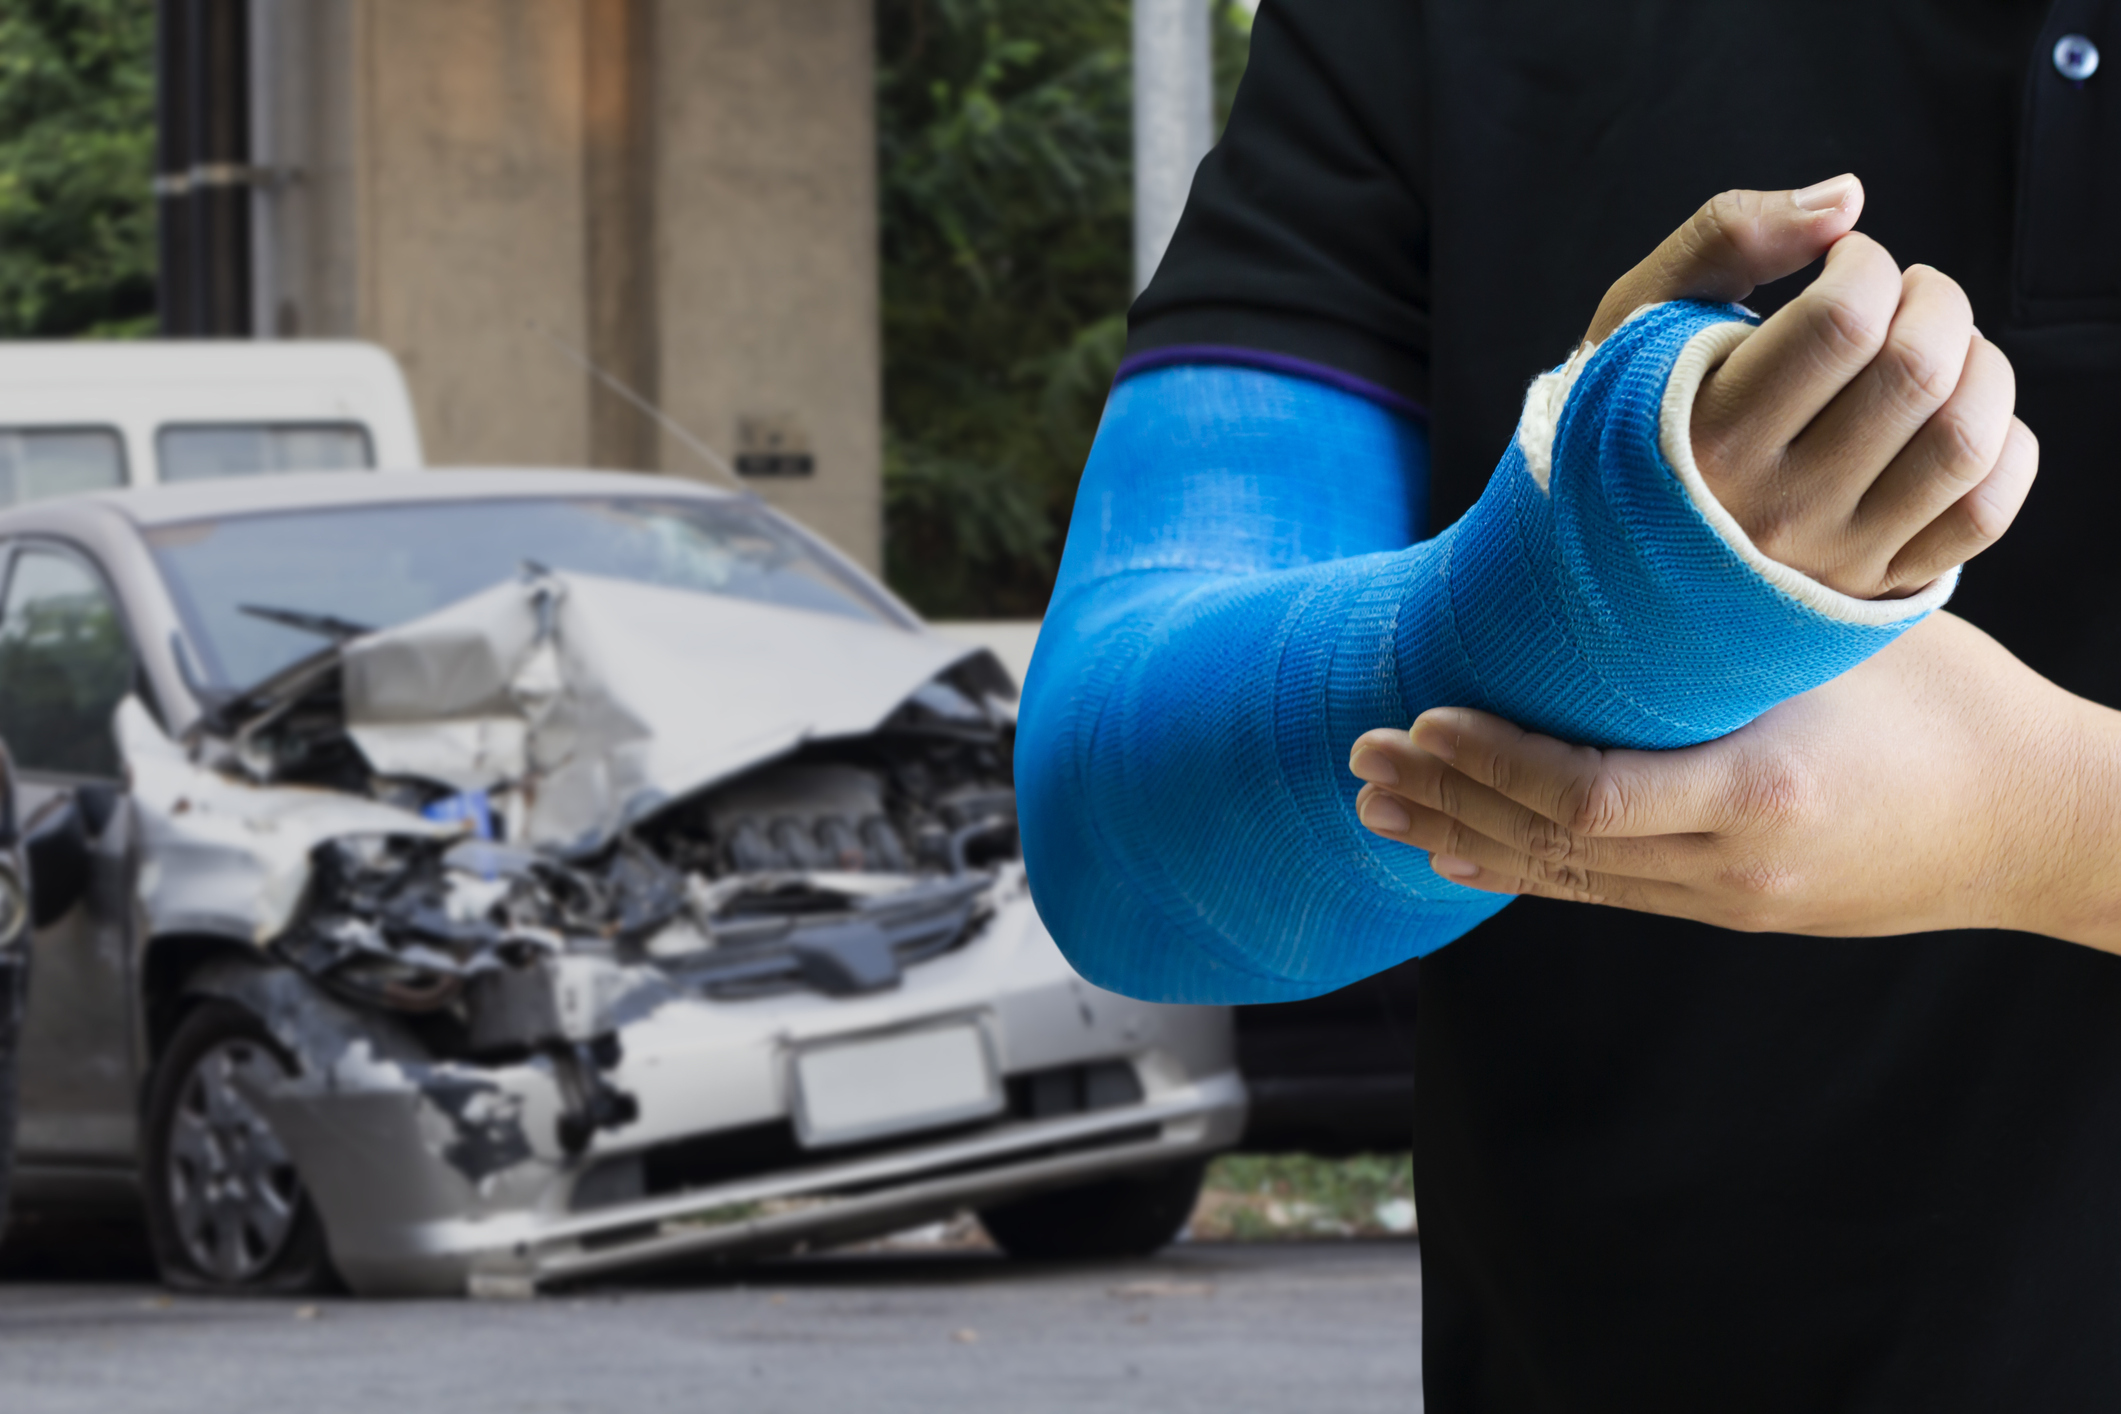 Unfortunately, even if you are injured, getting unemployment after a car accident is difficult